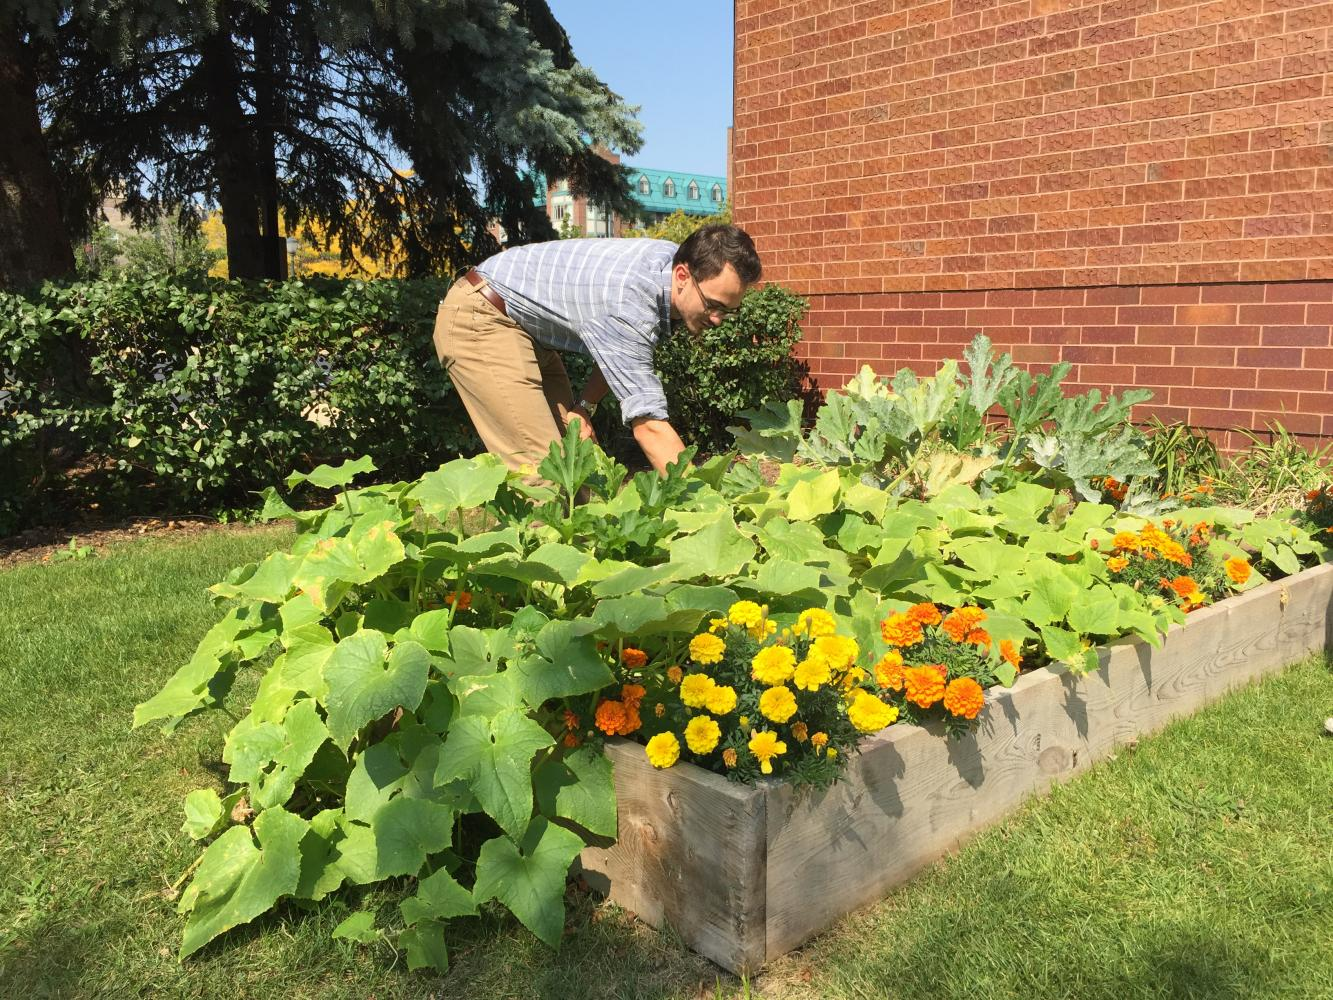 Aidan Flanagan, a senior in the College of Health Sciences, tends to the community garden outside of Weasler Auditorium.